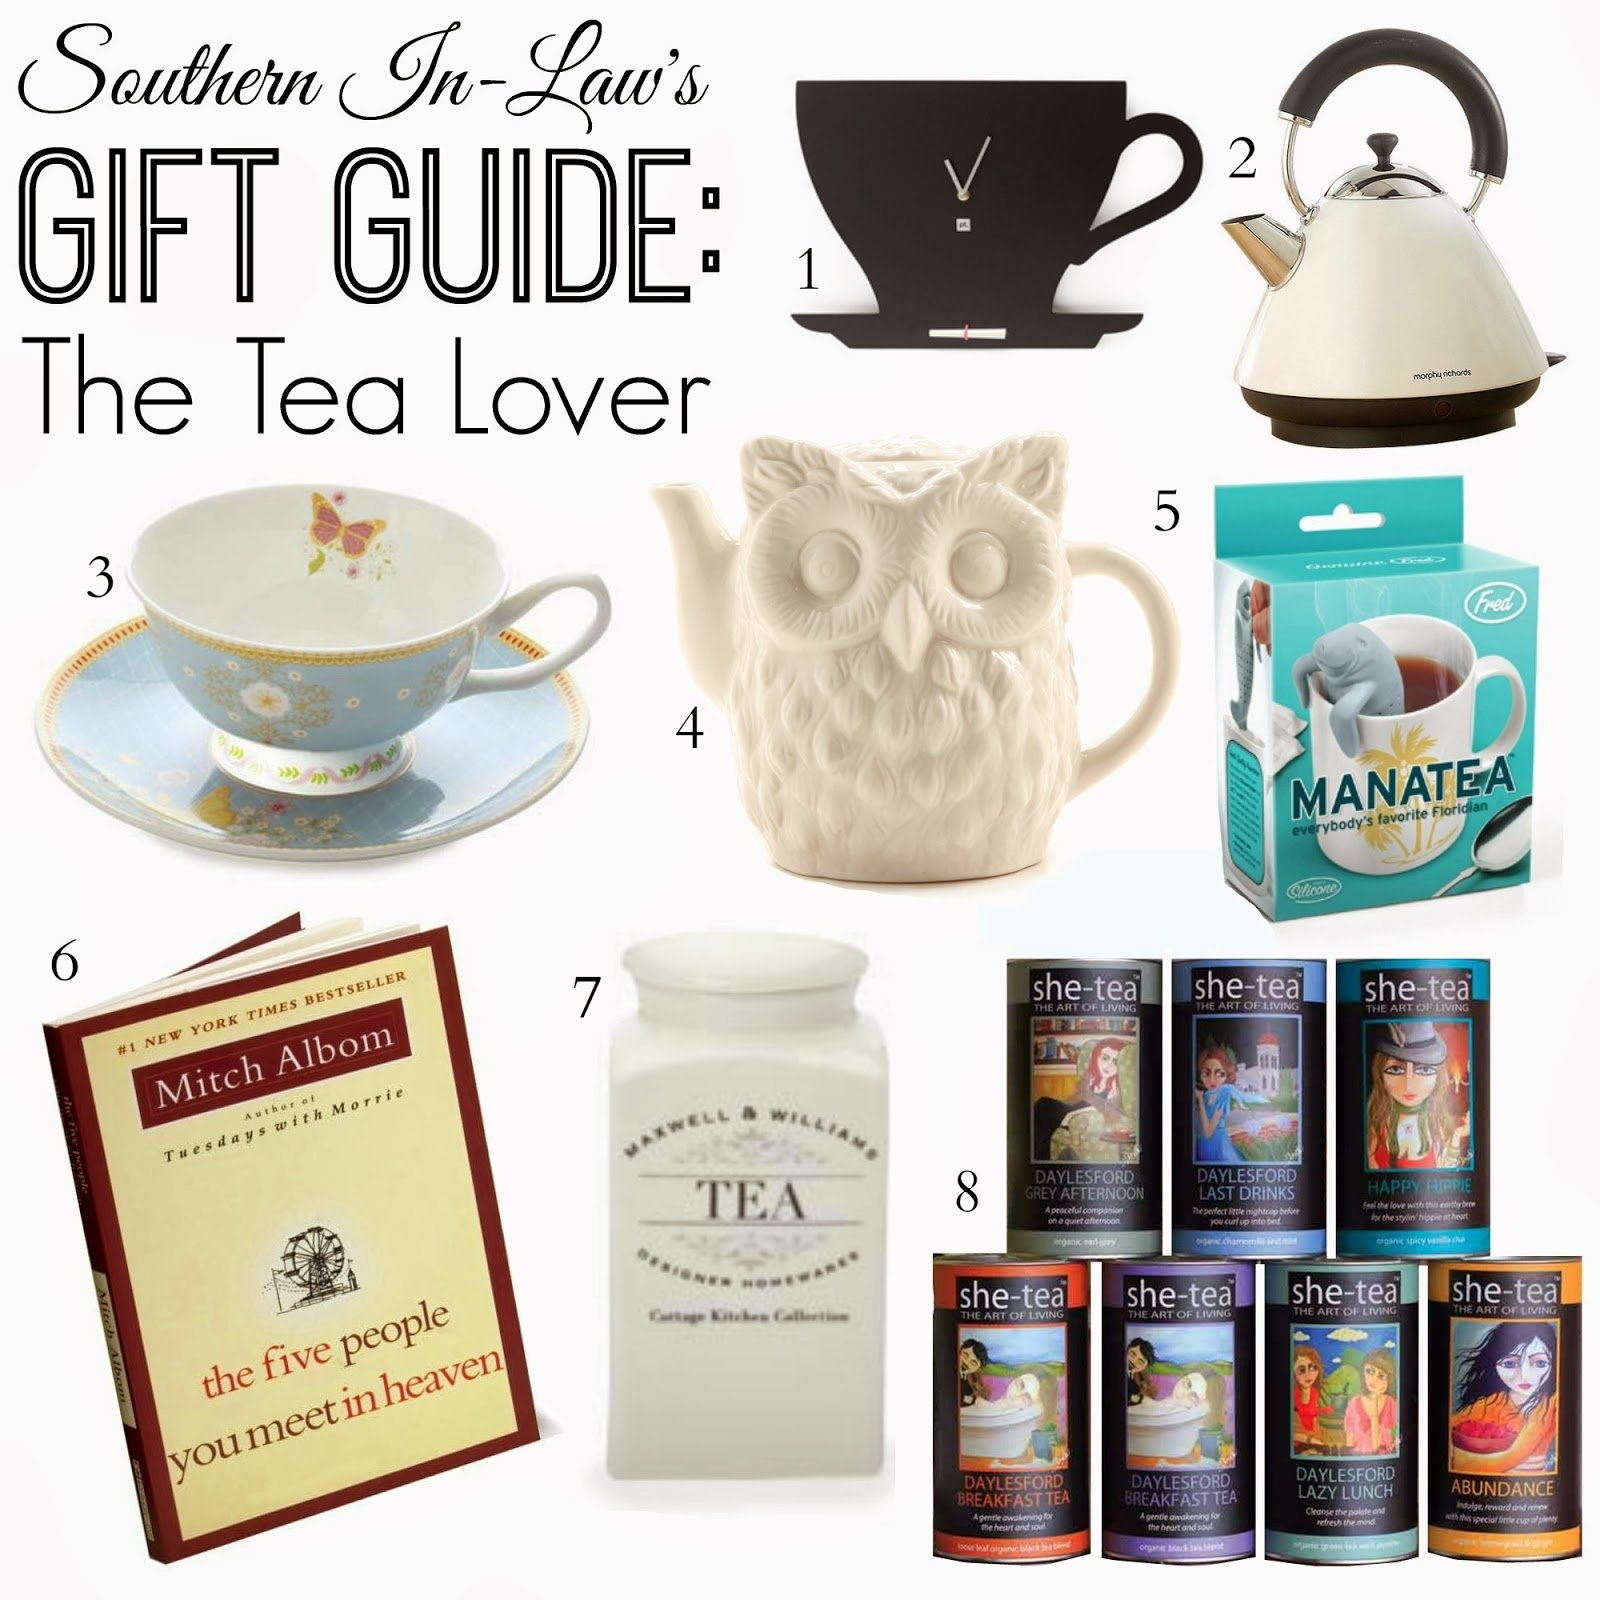 10 Ideal Gift Ideas For Tea Lovers southern in law gift guide for the tea lover 2020